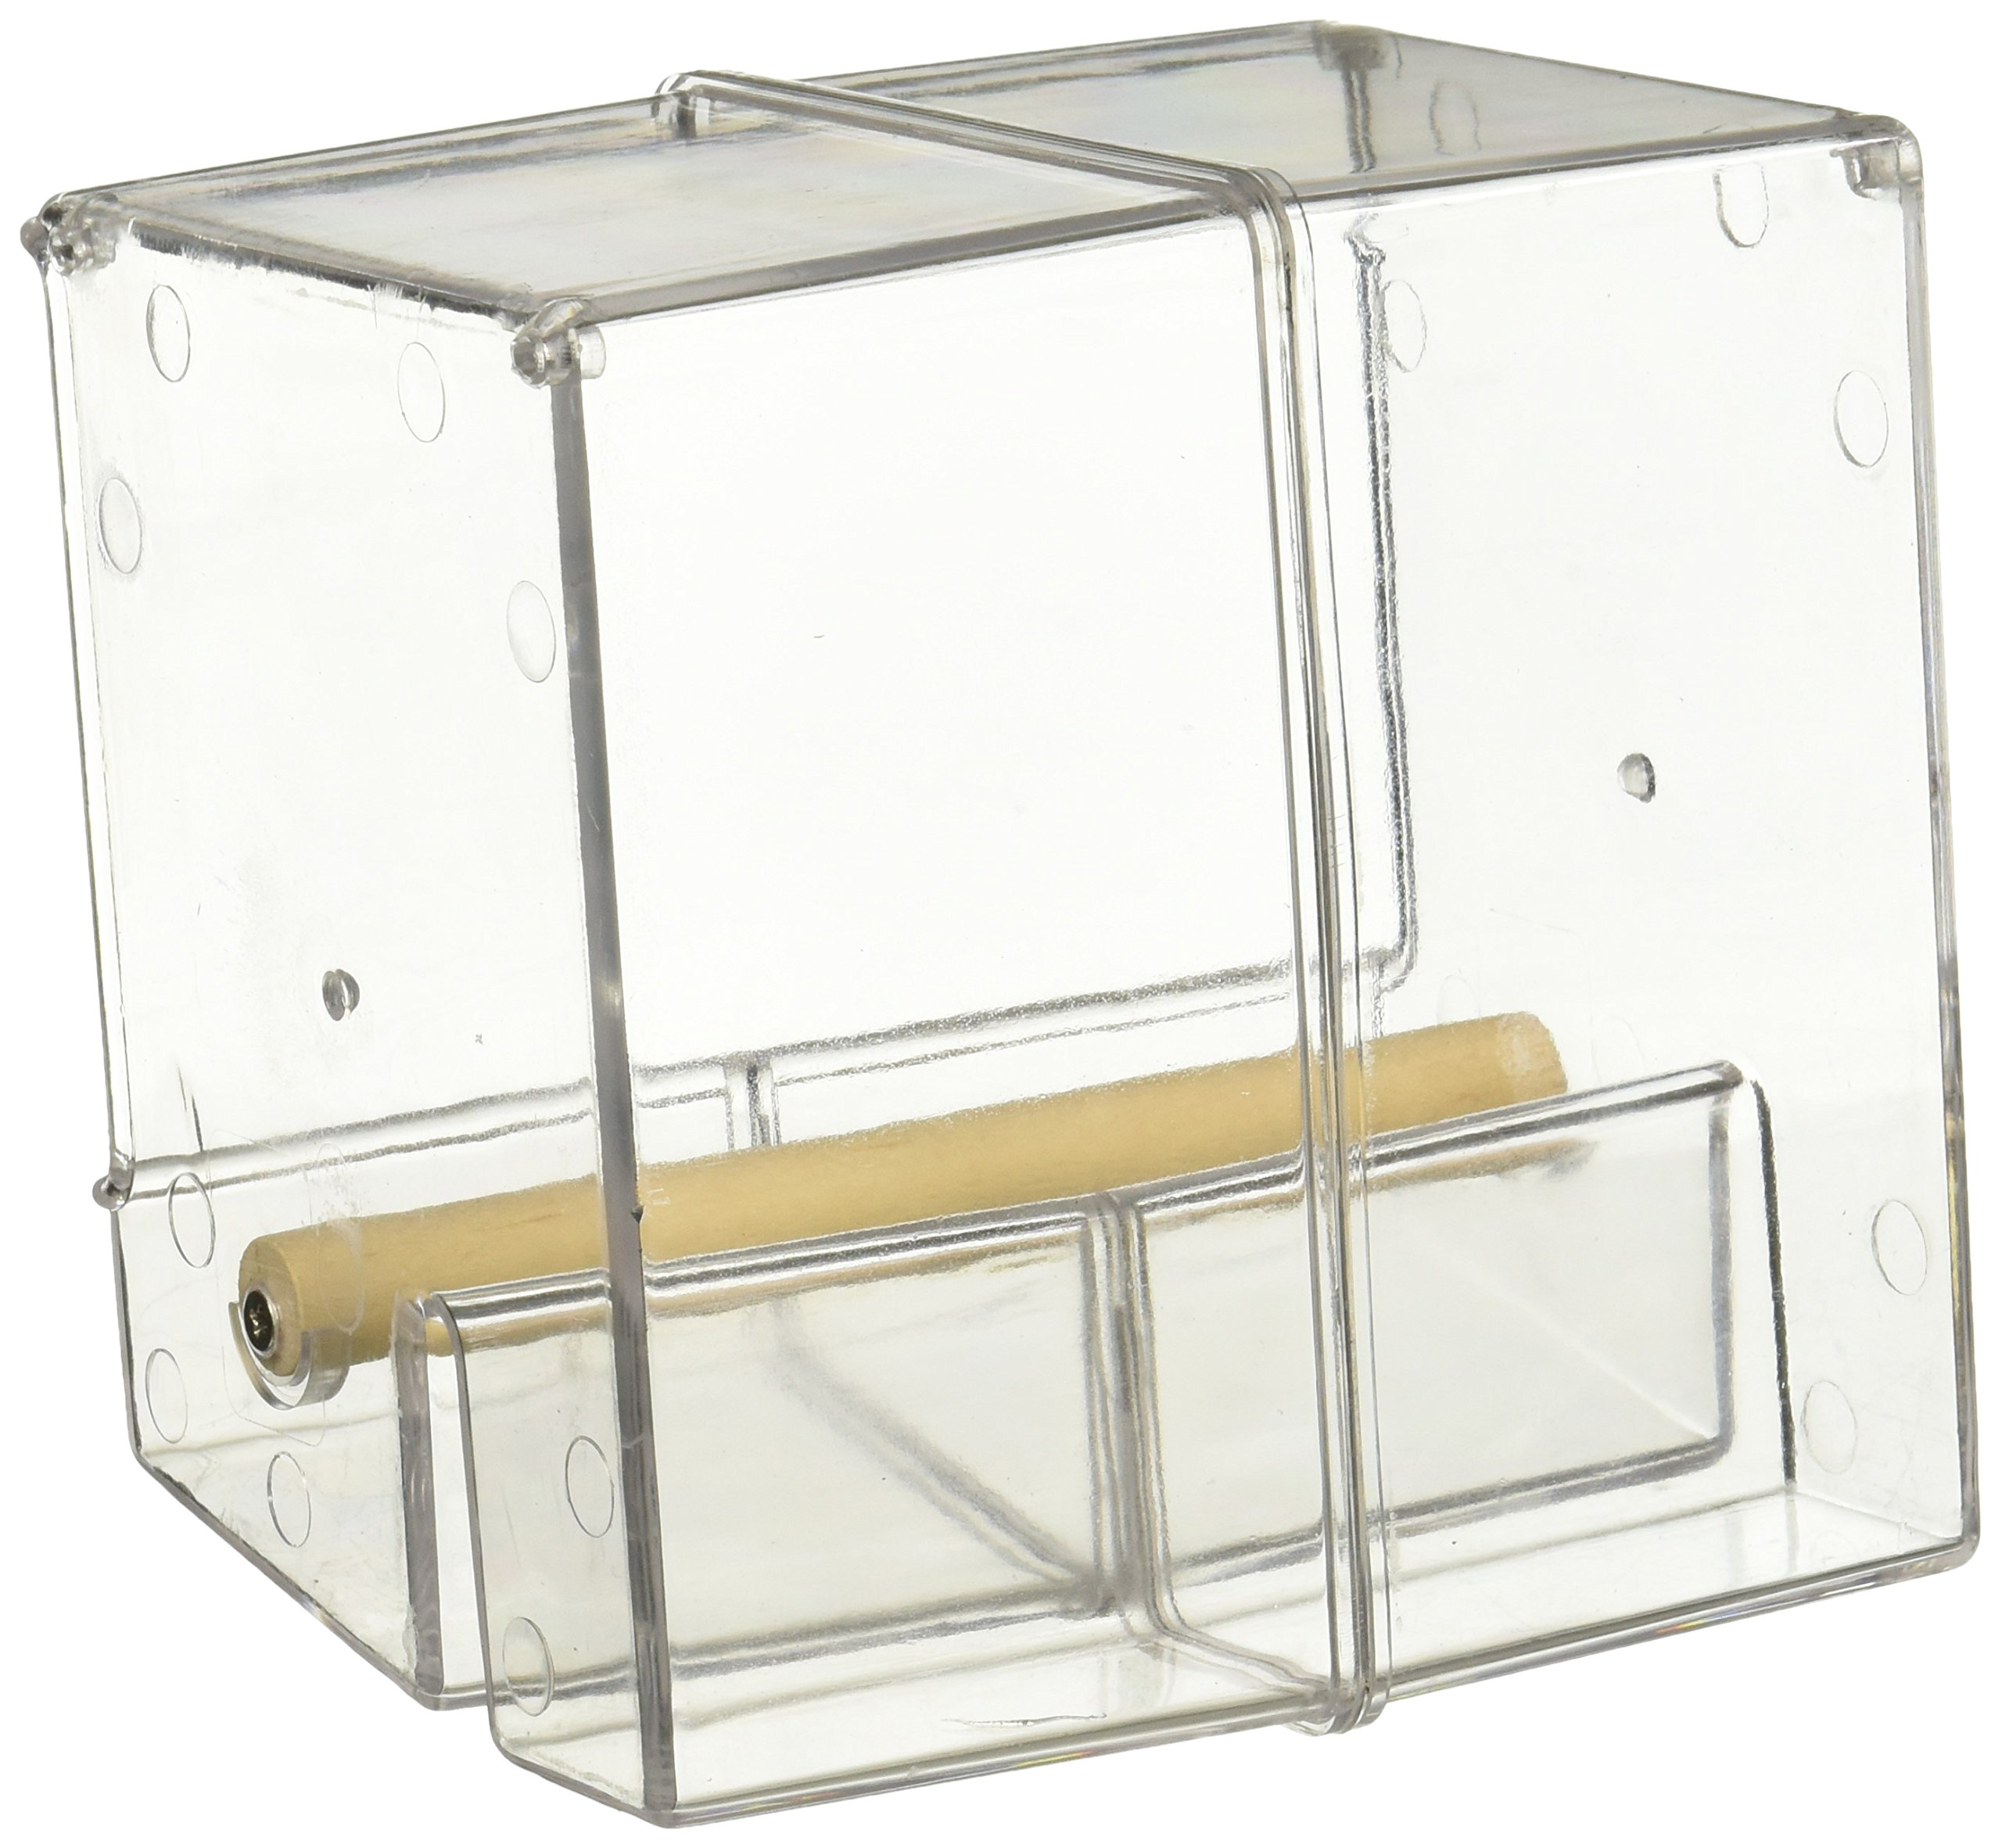 Creative Foraging Systems Seed Corral No Mess Pet Feeder, Keeps Cage Cleaner by Caitec Corp